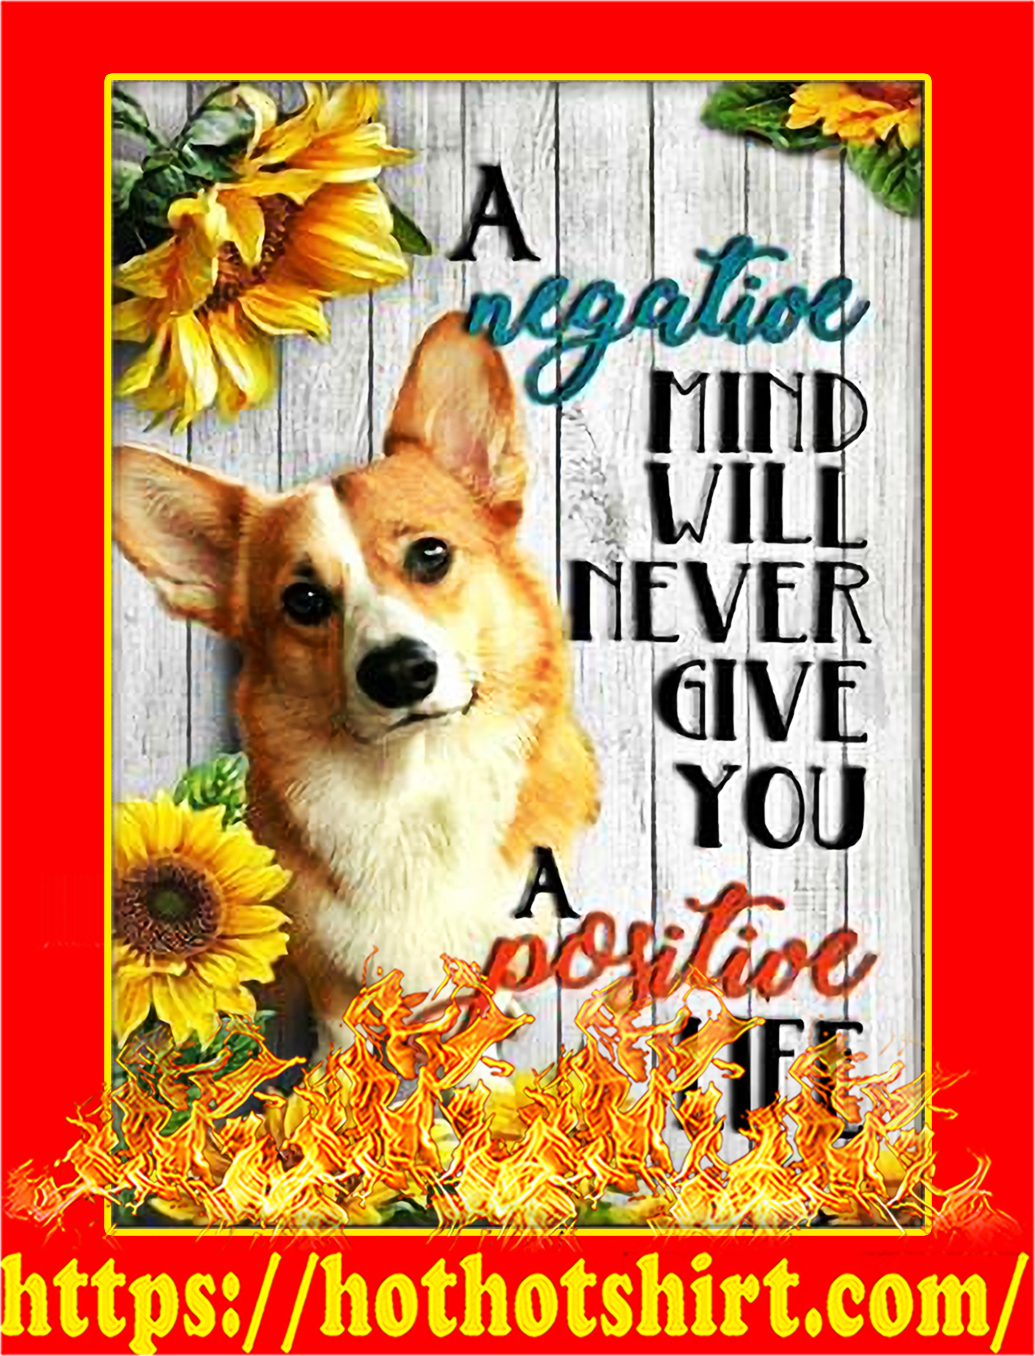 Corgi A negative mind will never give you a positive life poster - A1